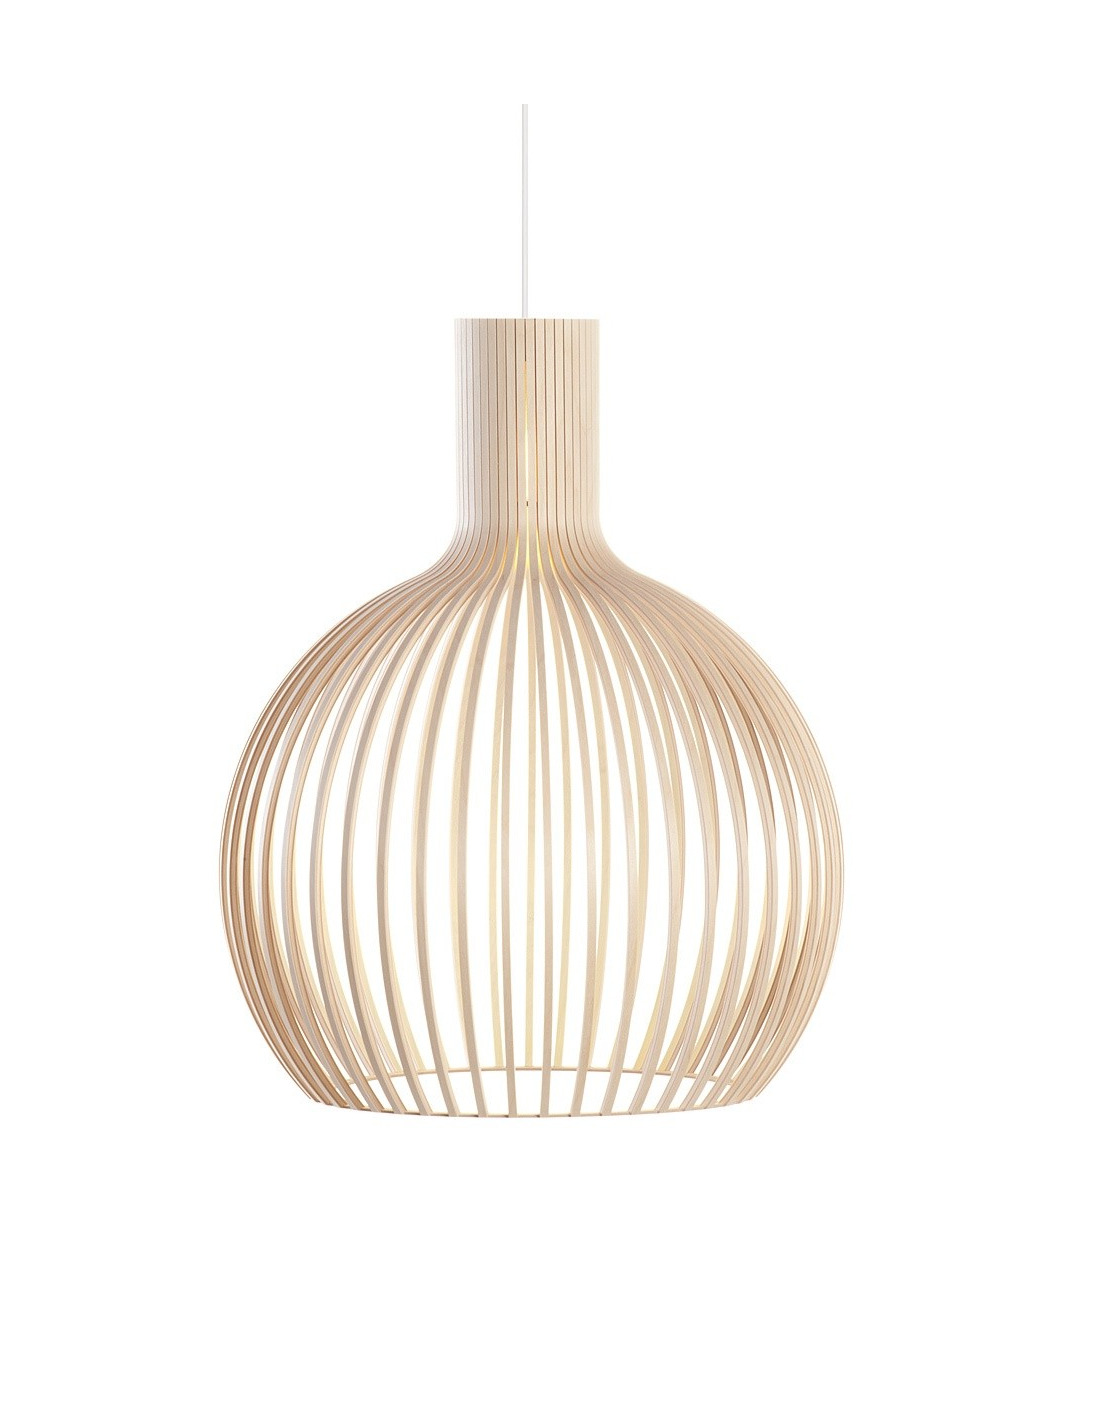 Suspension au design scandinave Octo 4240 en bois naturel Otoko # Suspension Design Bois